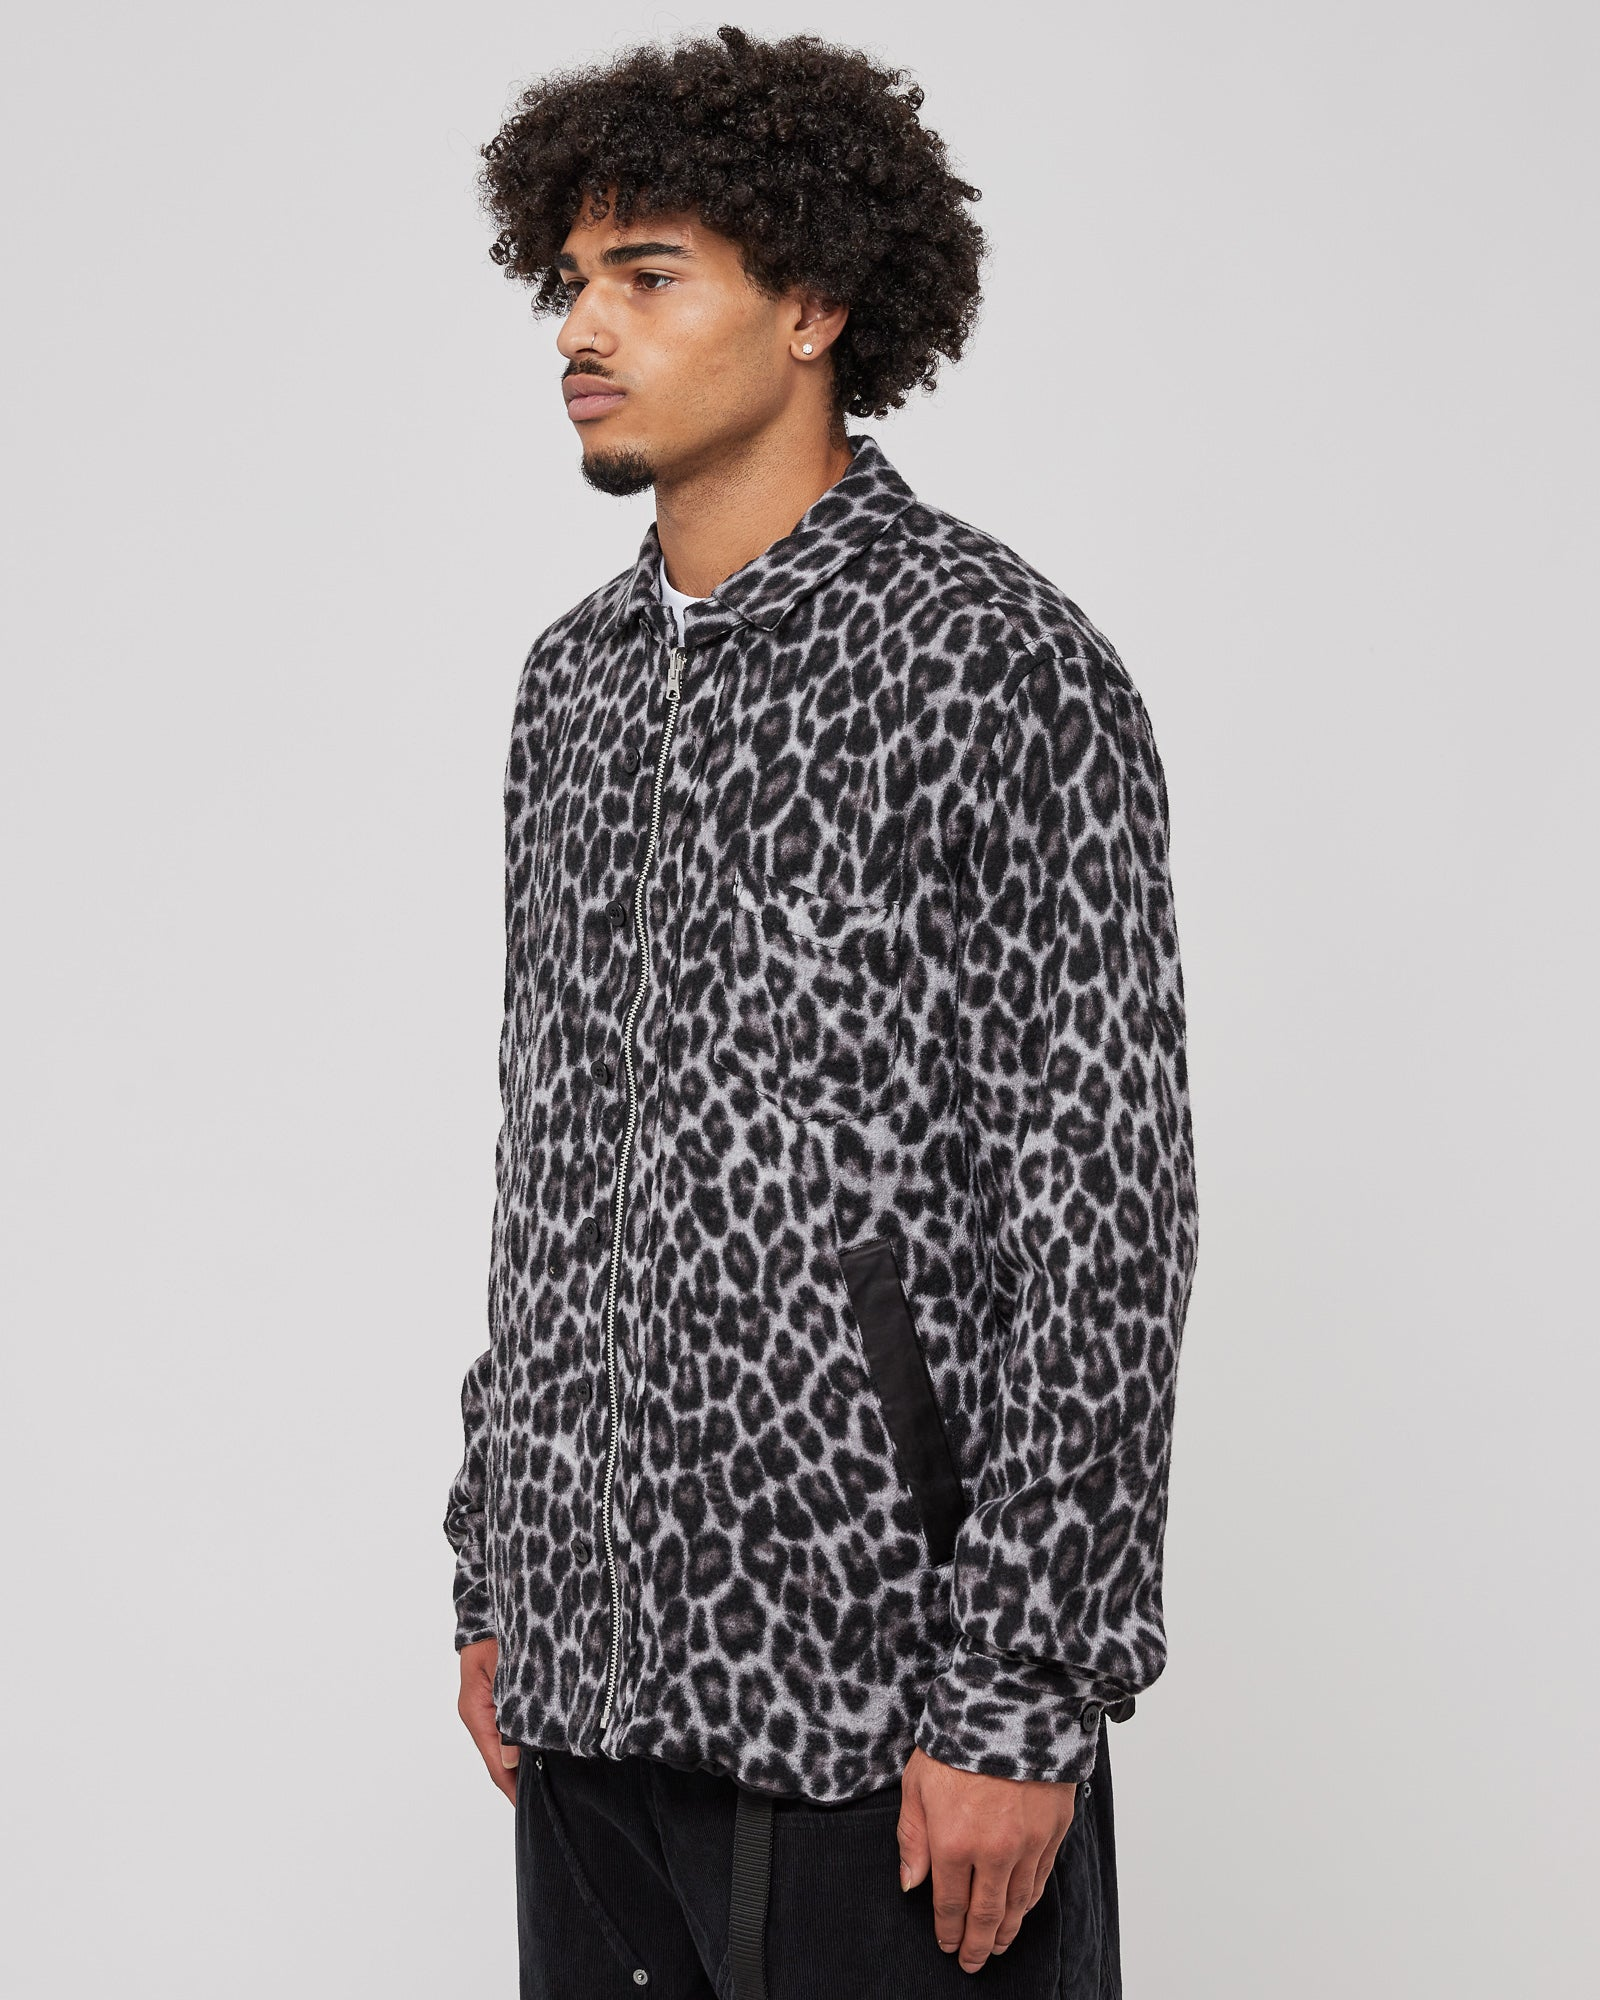 Leopard Shrivel Shirt in Black